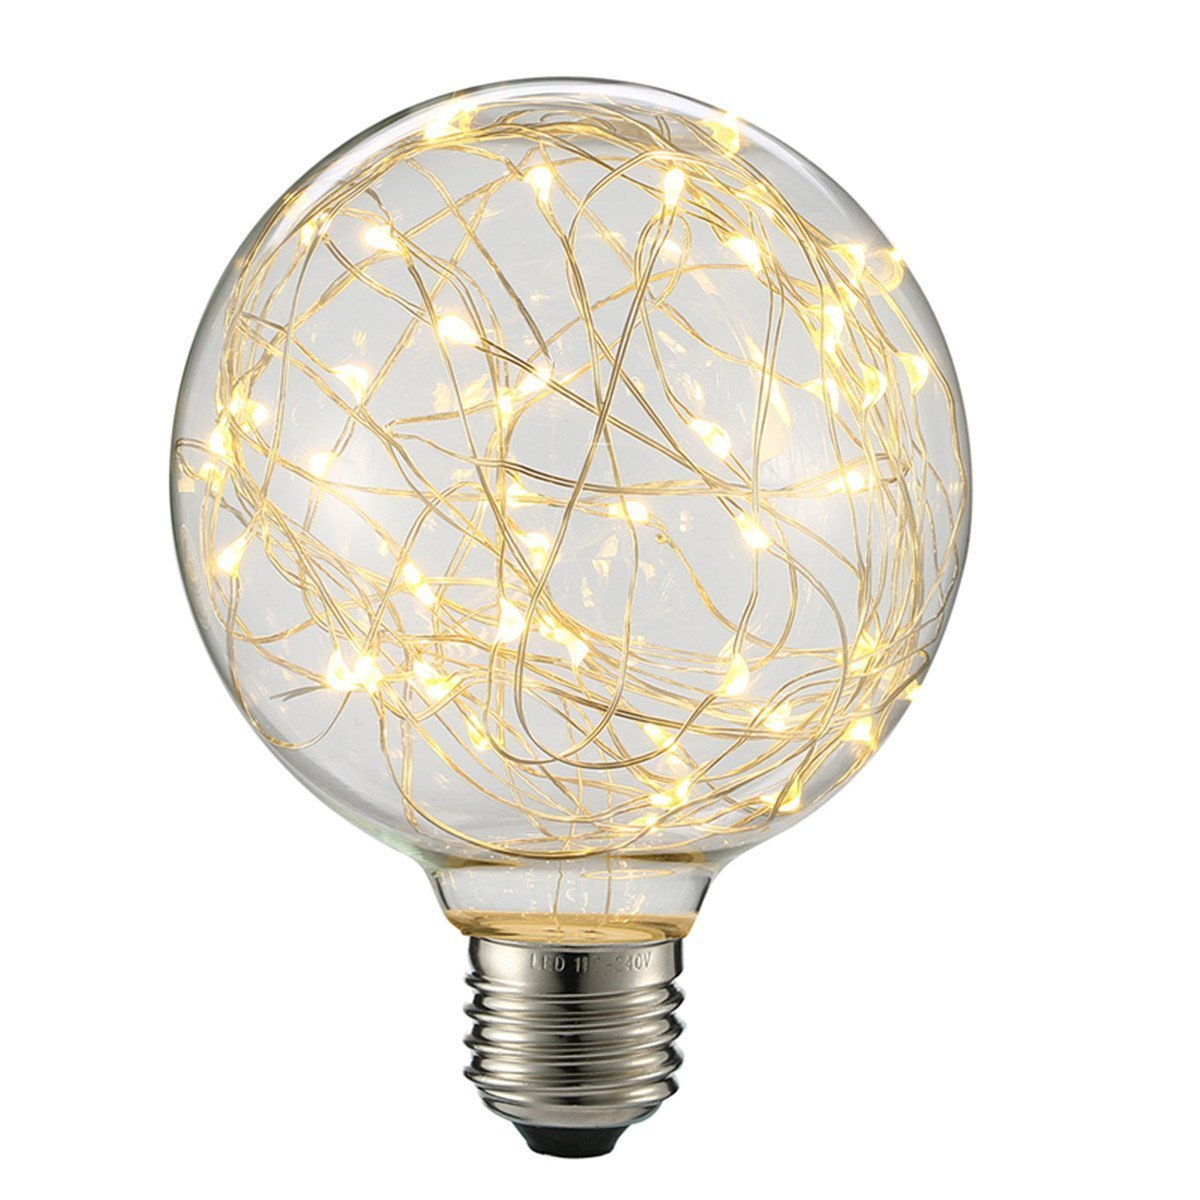 kingso g95 vintage edison bulb e27 base 3w 300lm antique filament globe spiral design led lights. Black Bedroom Furniture Sets. Home Design Ideas